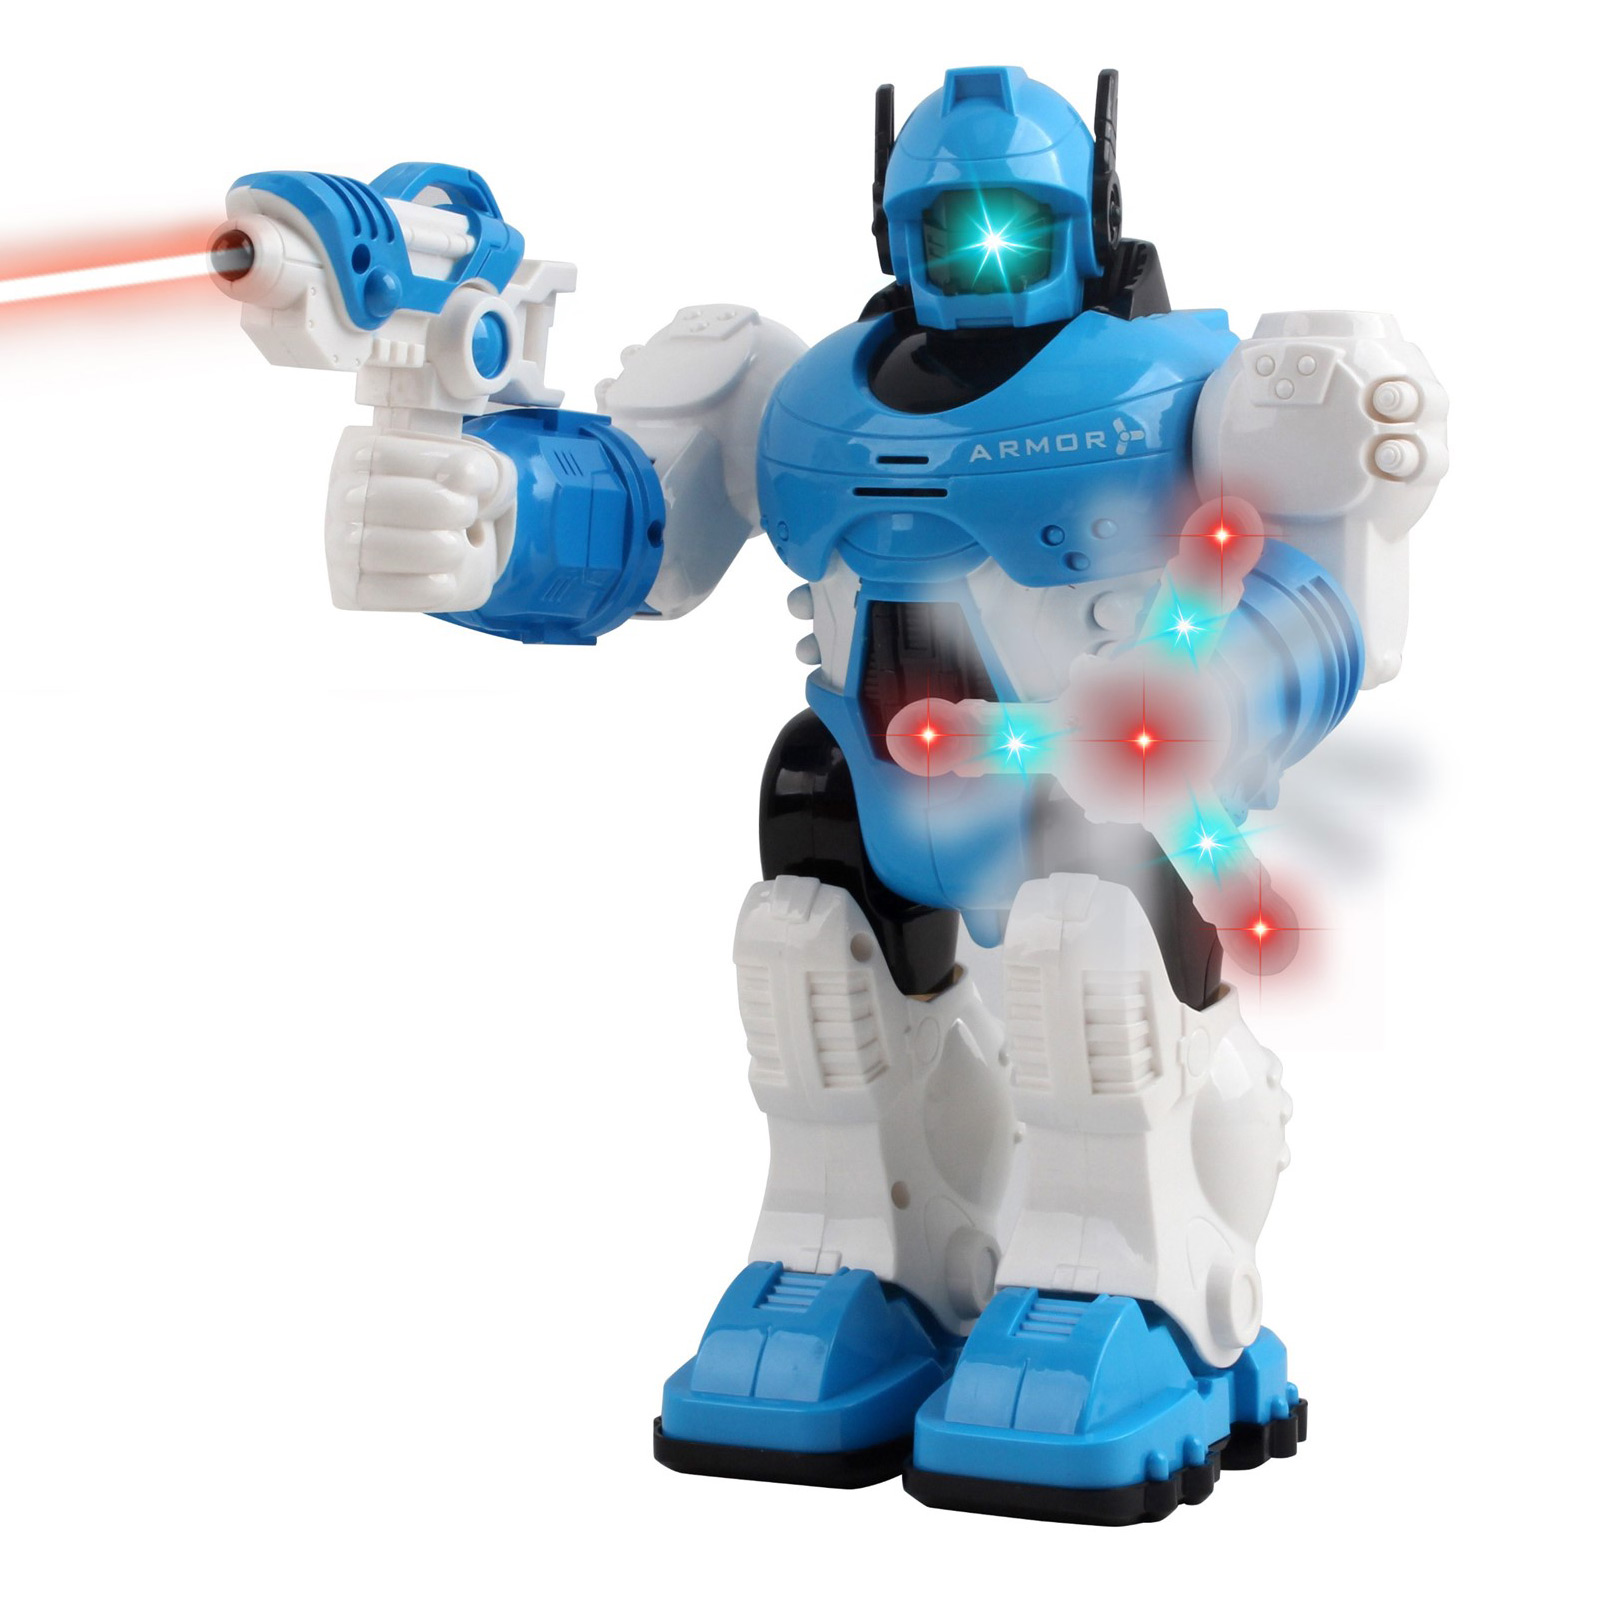 Walking Toy Robot Interactive With Spinning Hand Lights And Sounds Kids Smart Police Robocop Android Robotic Cop Perfect Action Toy For Boys Girls Toddlers Battery Operated White Bump And Go